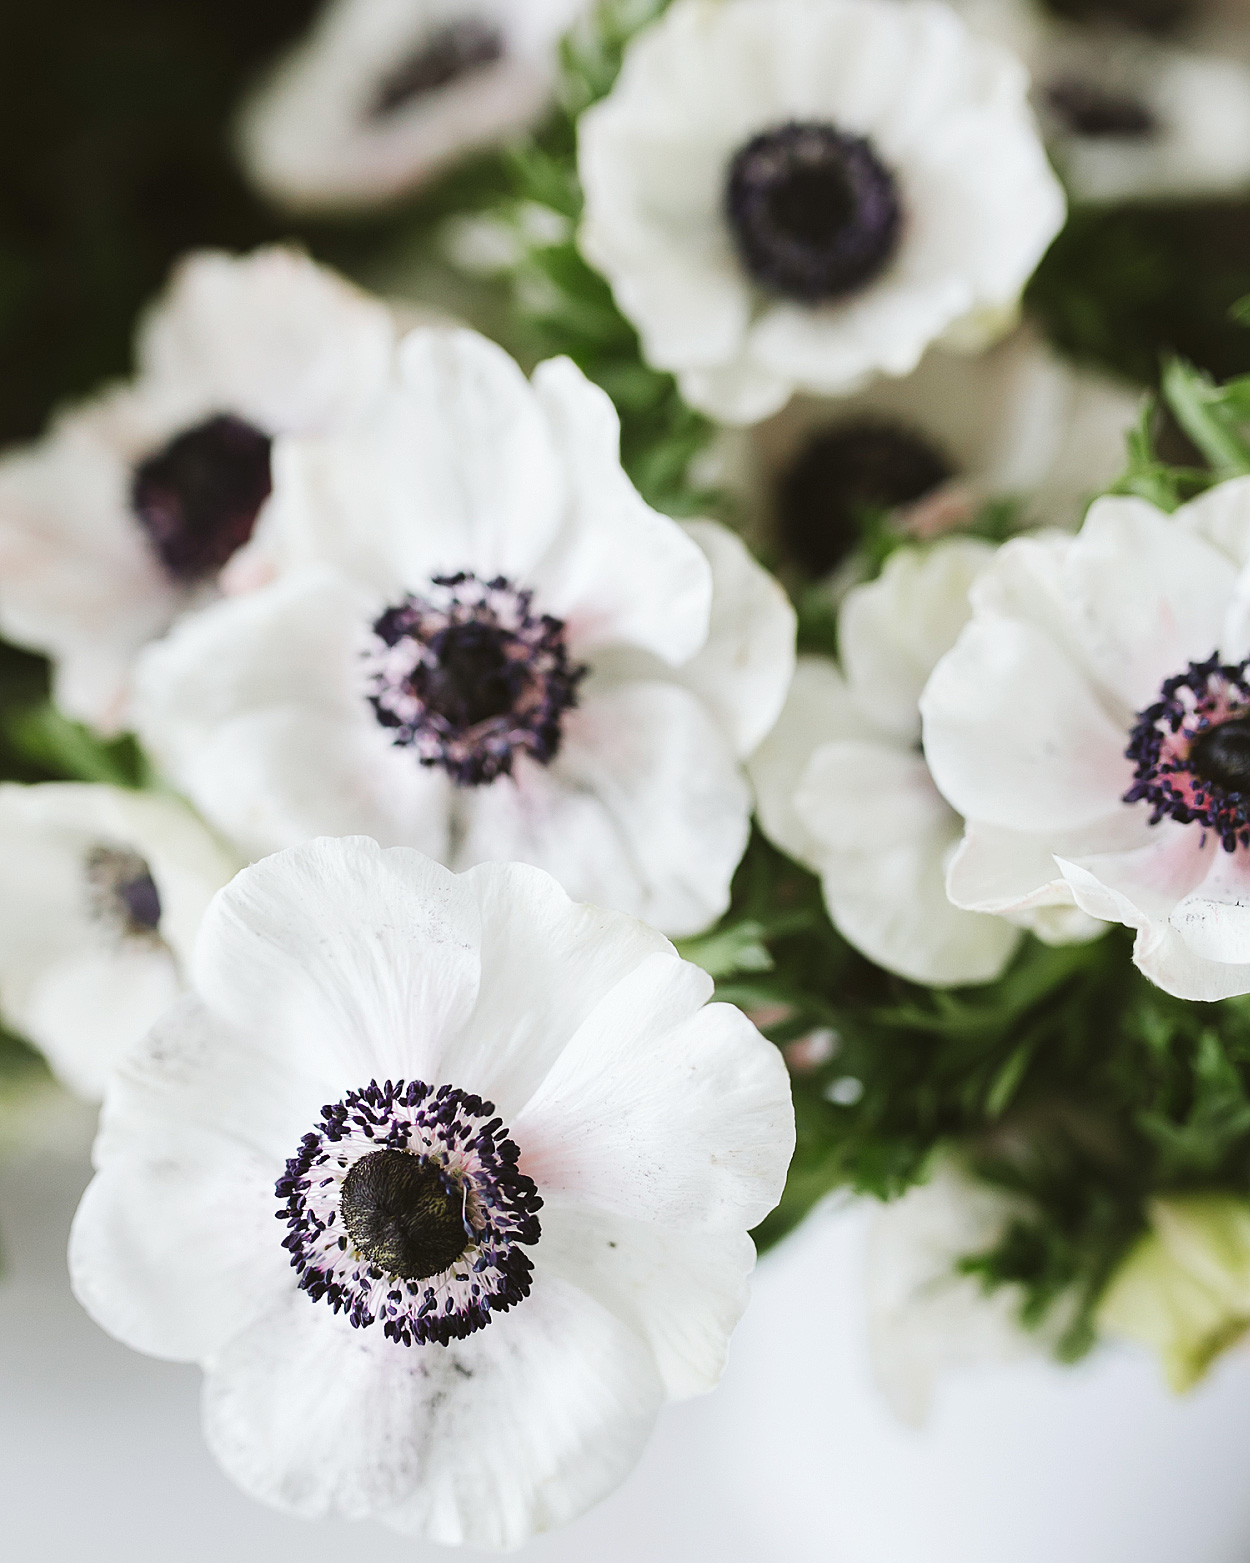 romantic-wedding-flowers-panda-anemone-0516.jpg